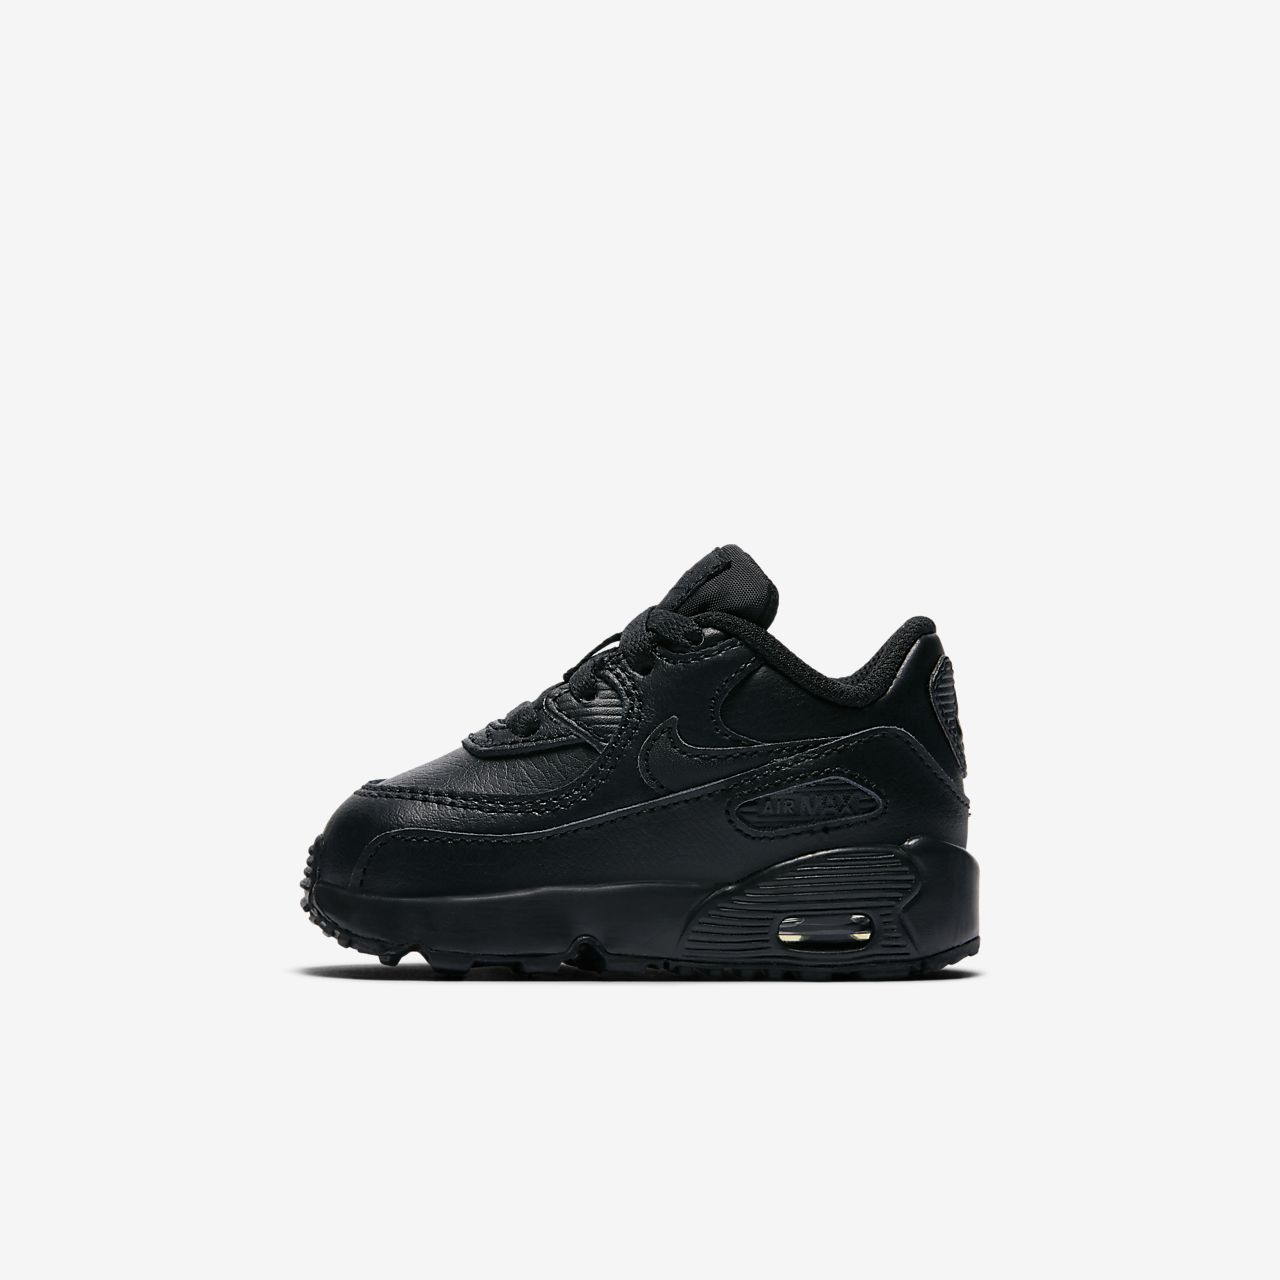 Nike Air Max 90 Leather-sko til babyer/småbørn